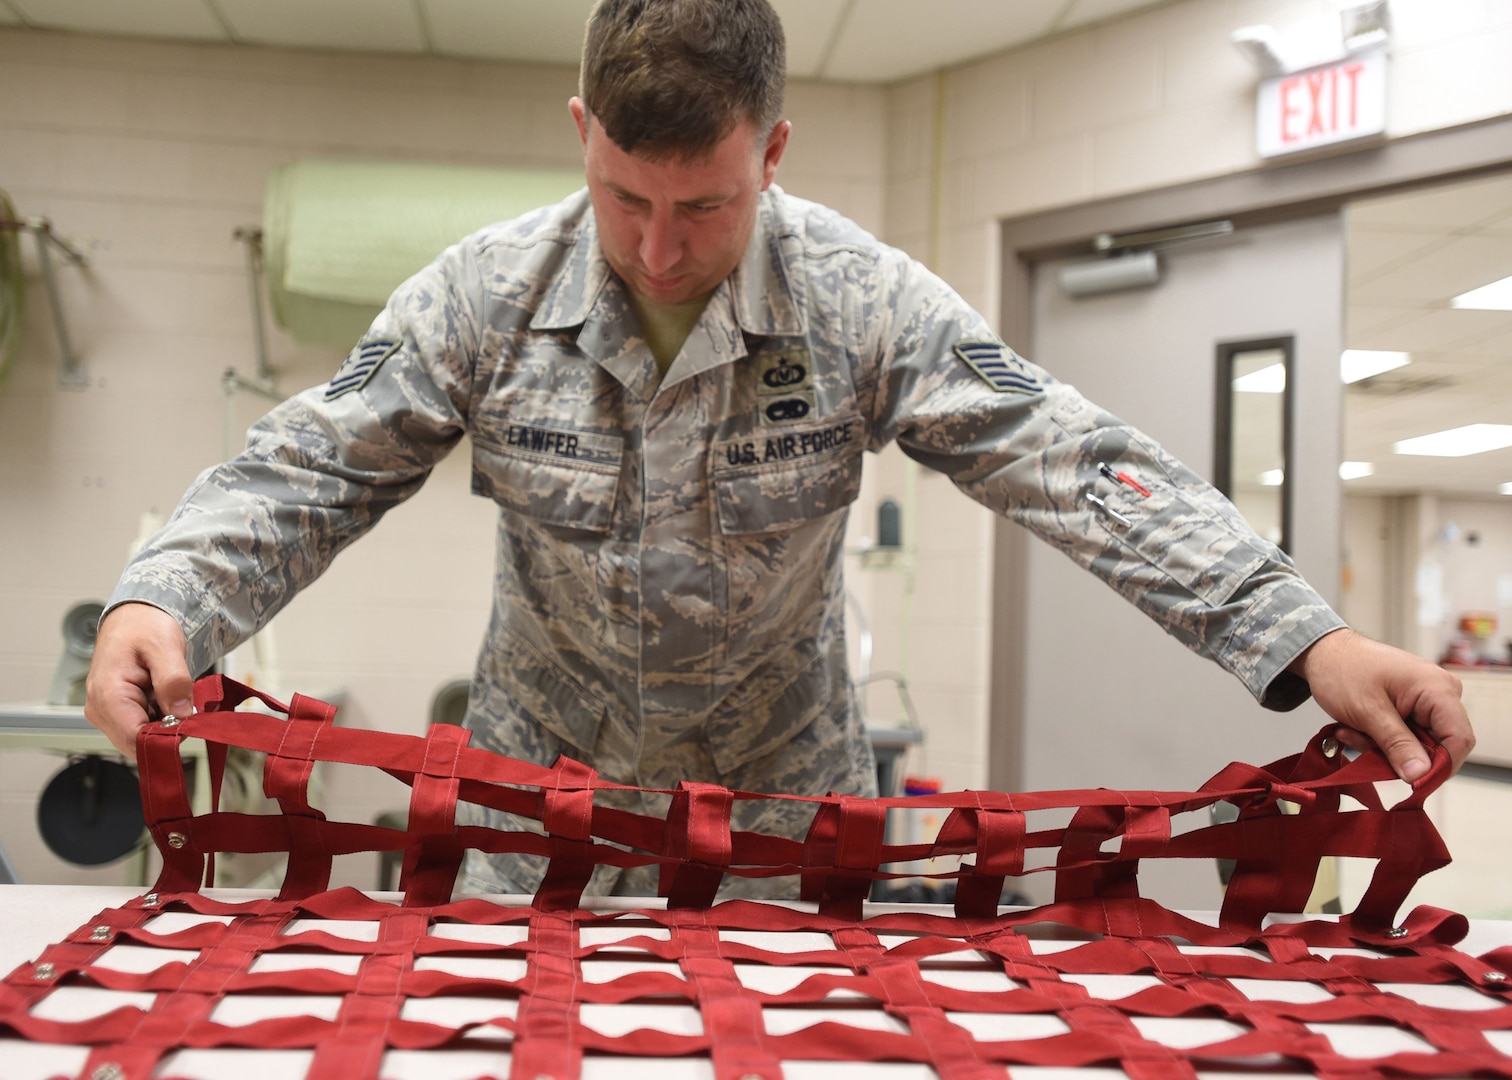 Tech. Sgt. Lawrence Lawfer, an aircrew flight equipment journeyman with the Kentucky Air Guard's 123rd Operations Support Squadron in Louisville, Ky., inspects and identifies tears and other deficiencies on an aircraft seat harness June 9, 2017. The repair of life-saving equipment is the responsibility of the aircrew flight equipment shop here.